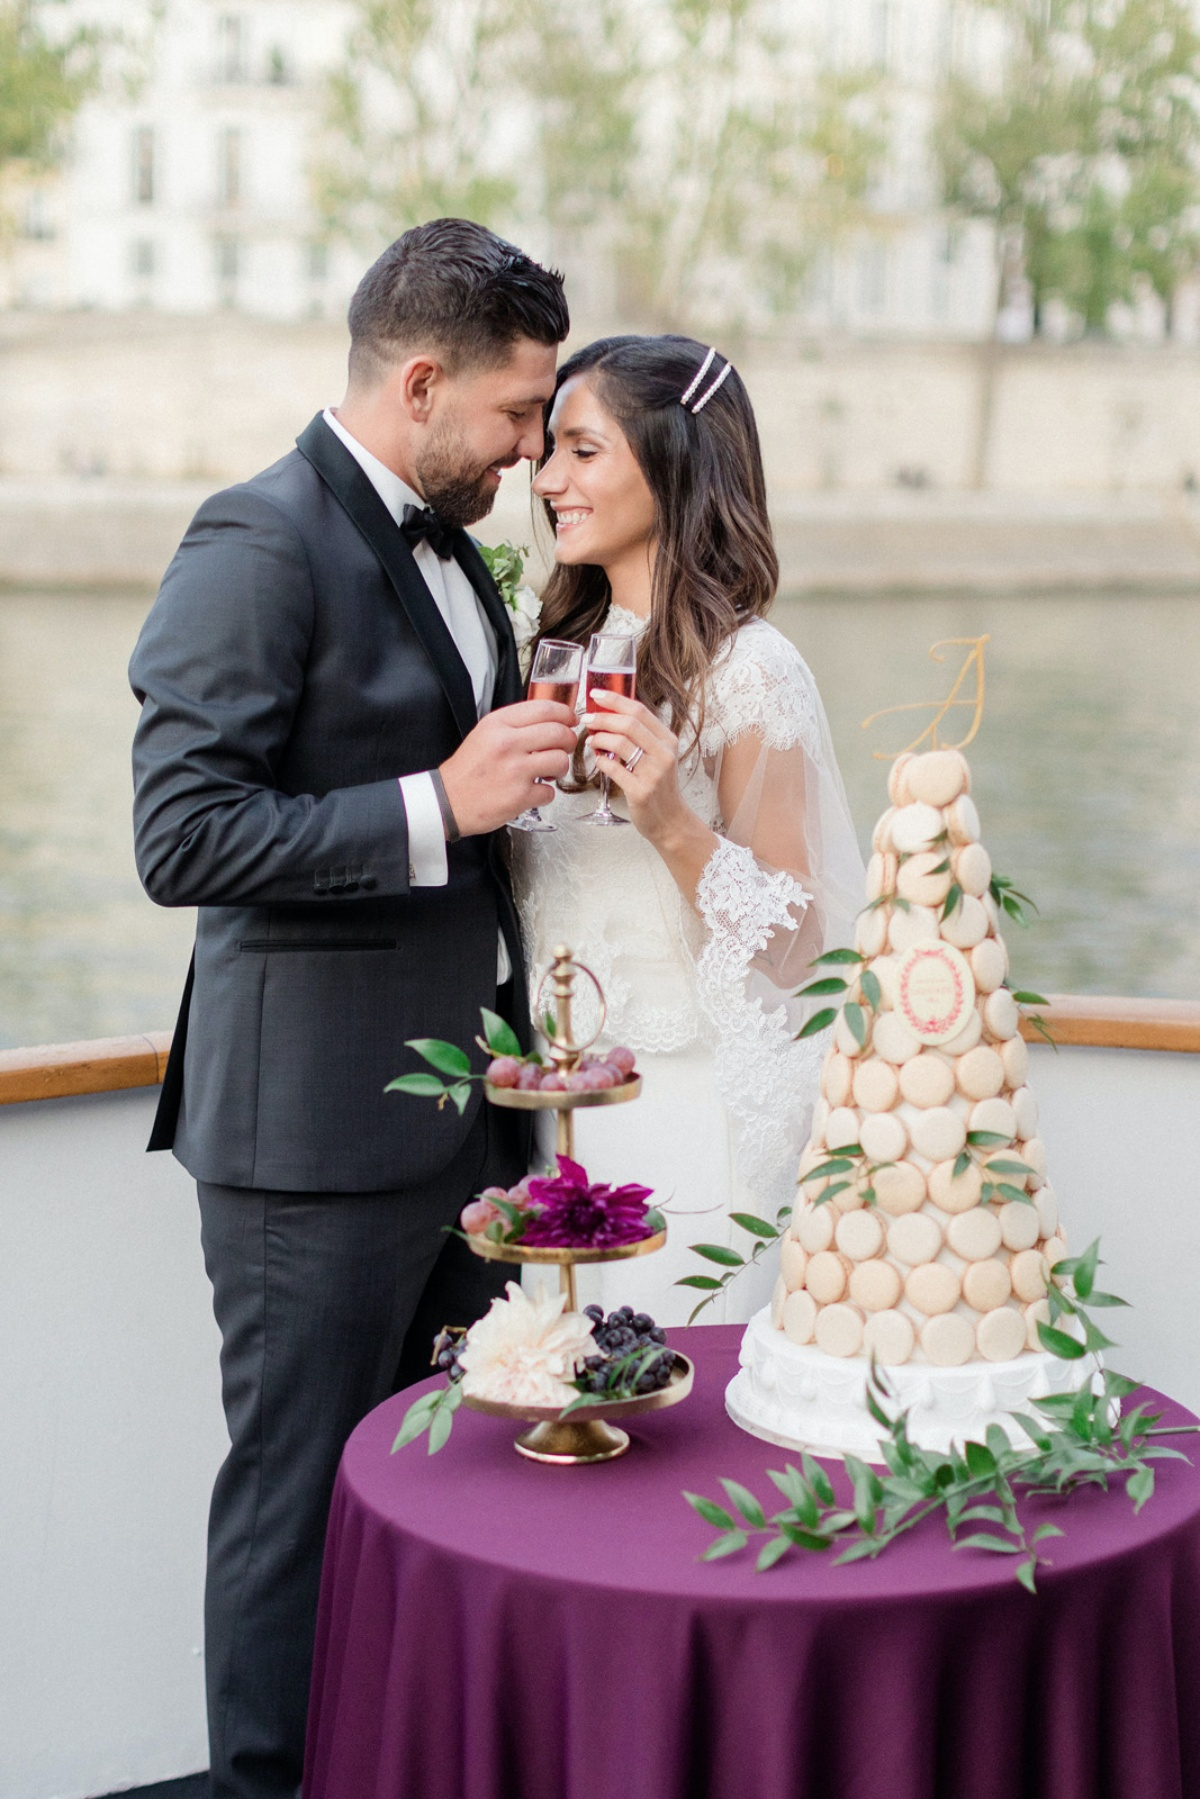 Romantic Wedding in Paris Crossing the River Seine